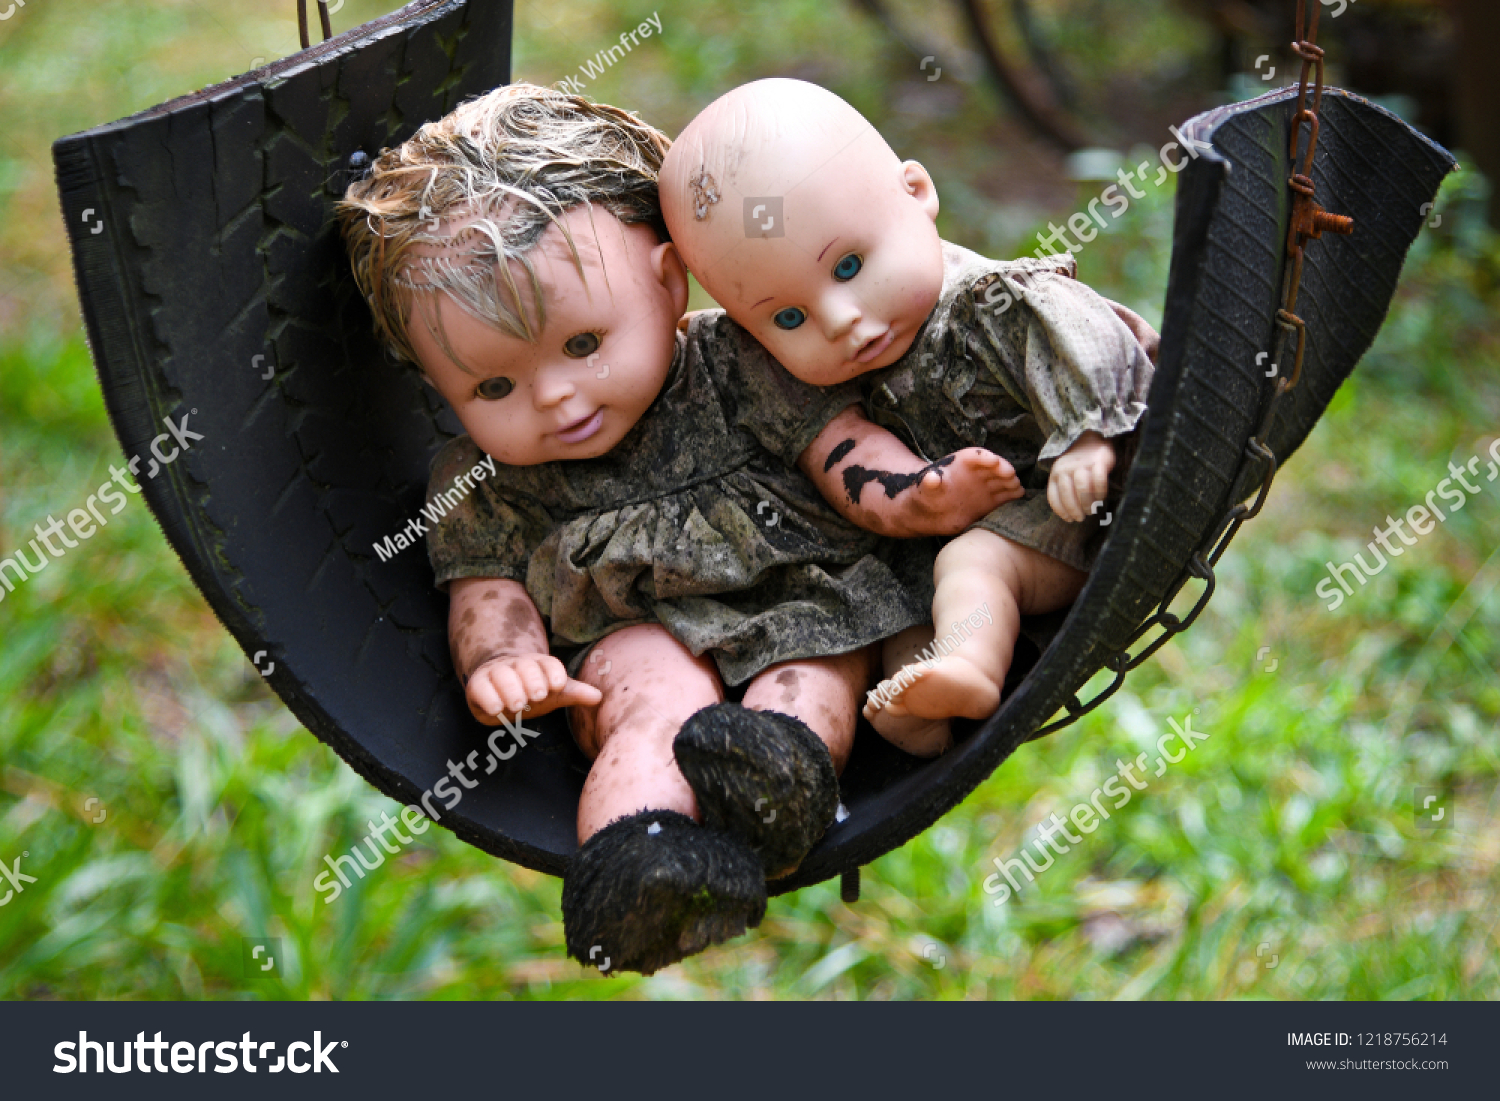 Two Creepy Grungy Old Baby Dolls Sitting in a Tire Swing